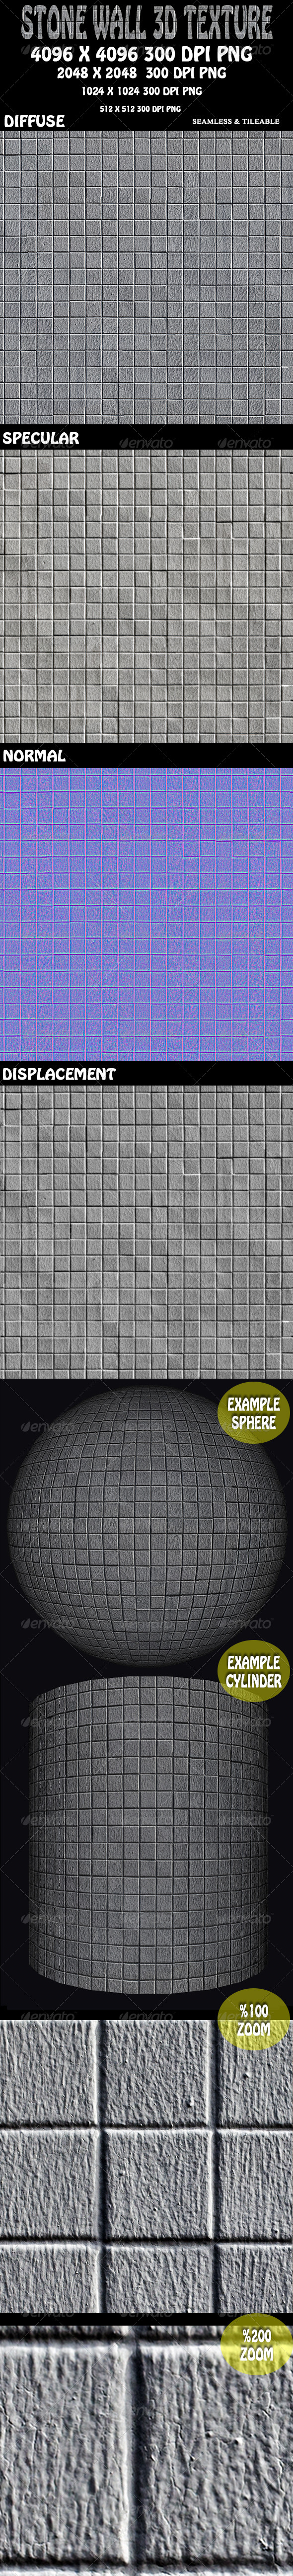 Stone Wall 3D Texture - 3DOcean Item for Sale